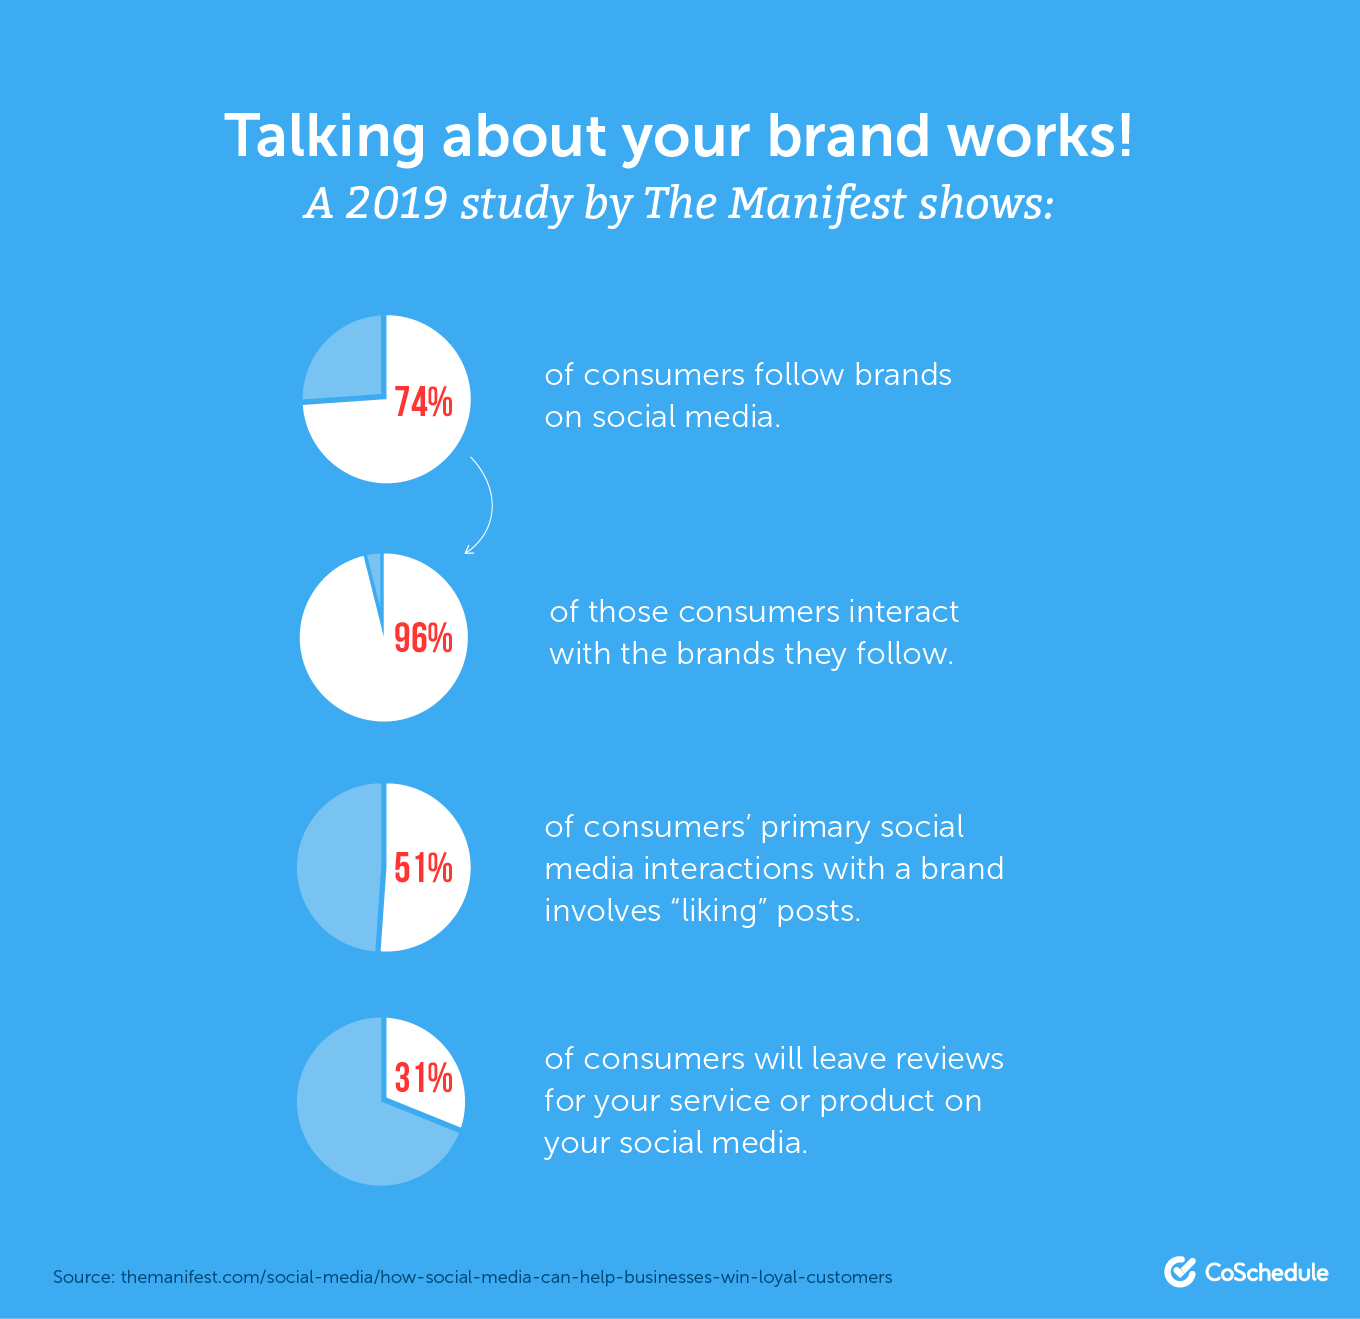 Talking about your brand works!